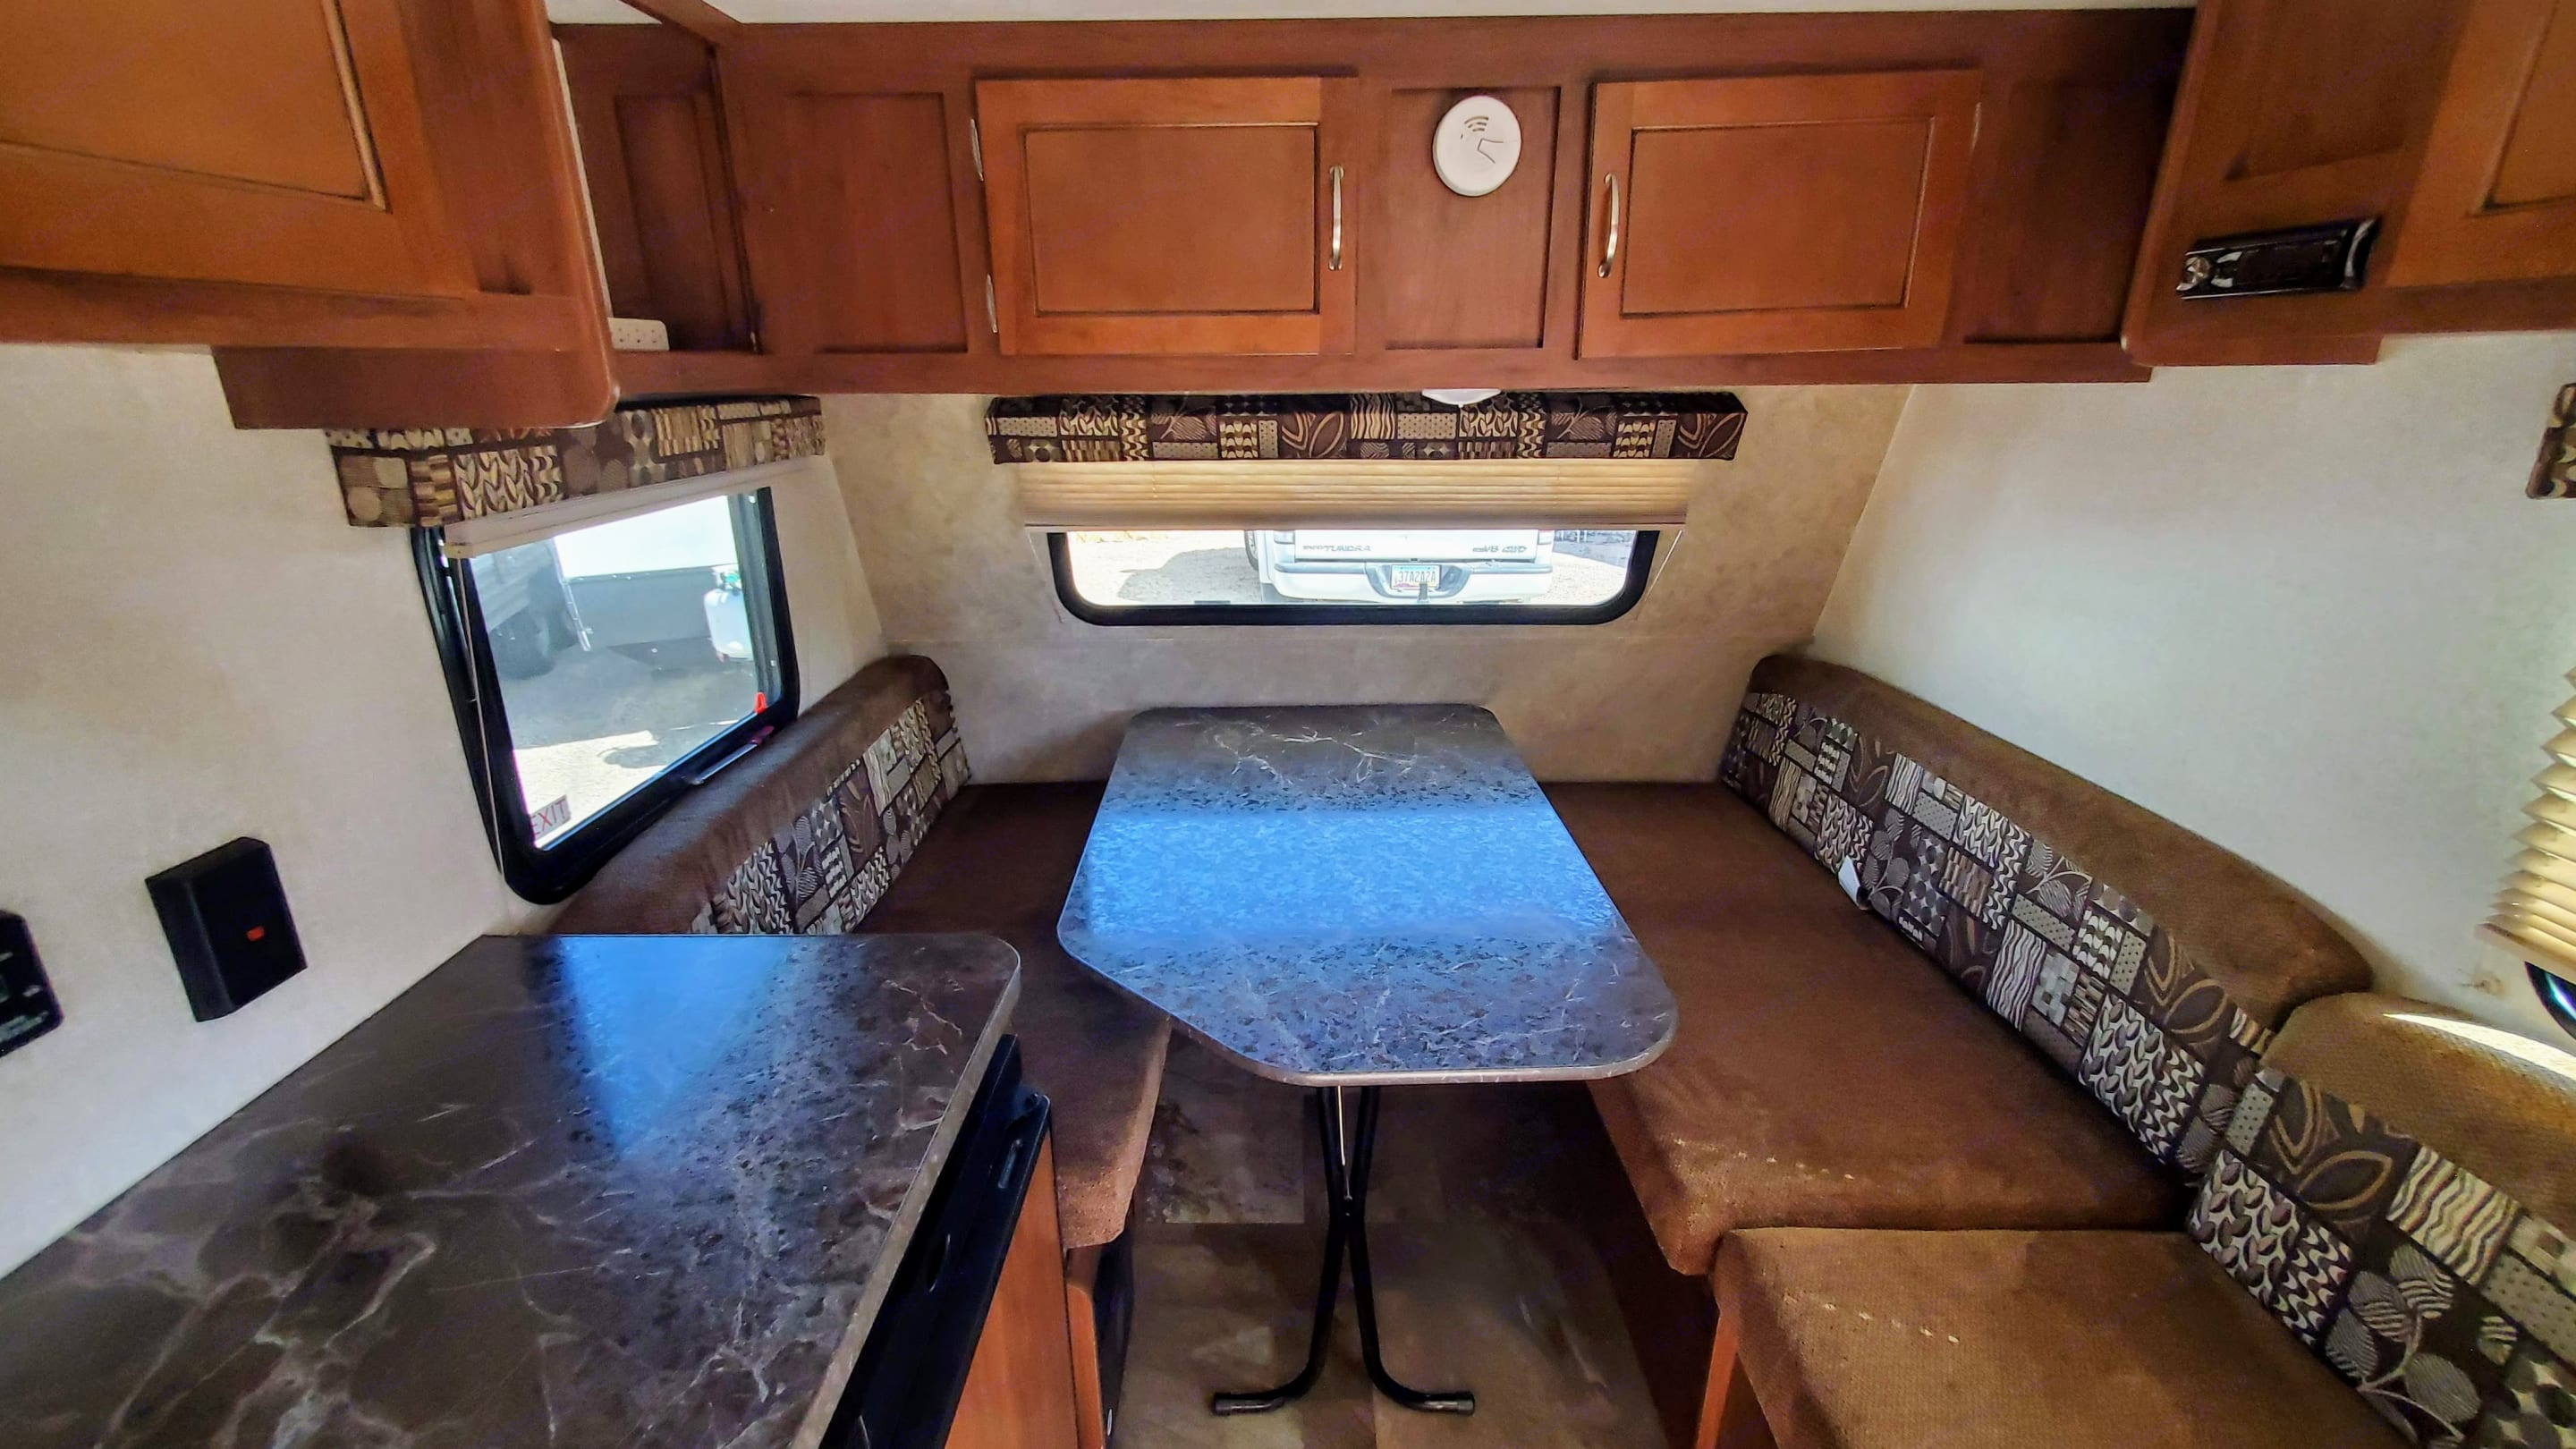 Dining table with lots of natural light. Jayco Jay Flight 2017